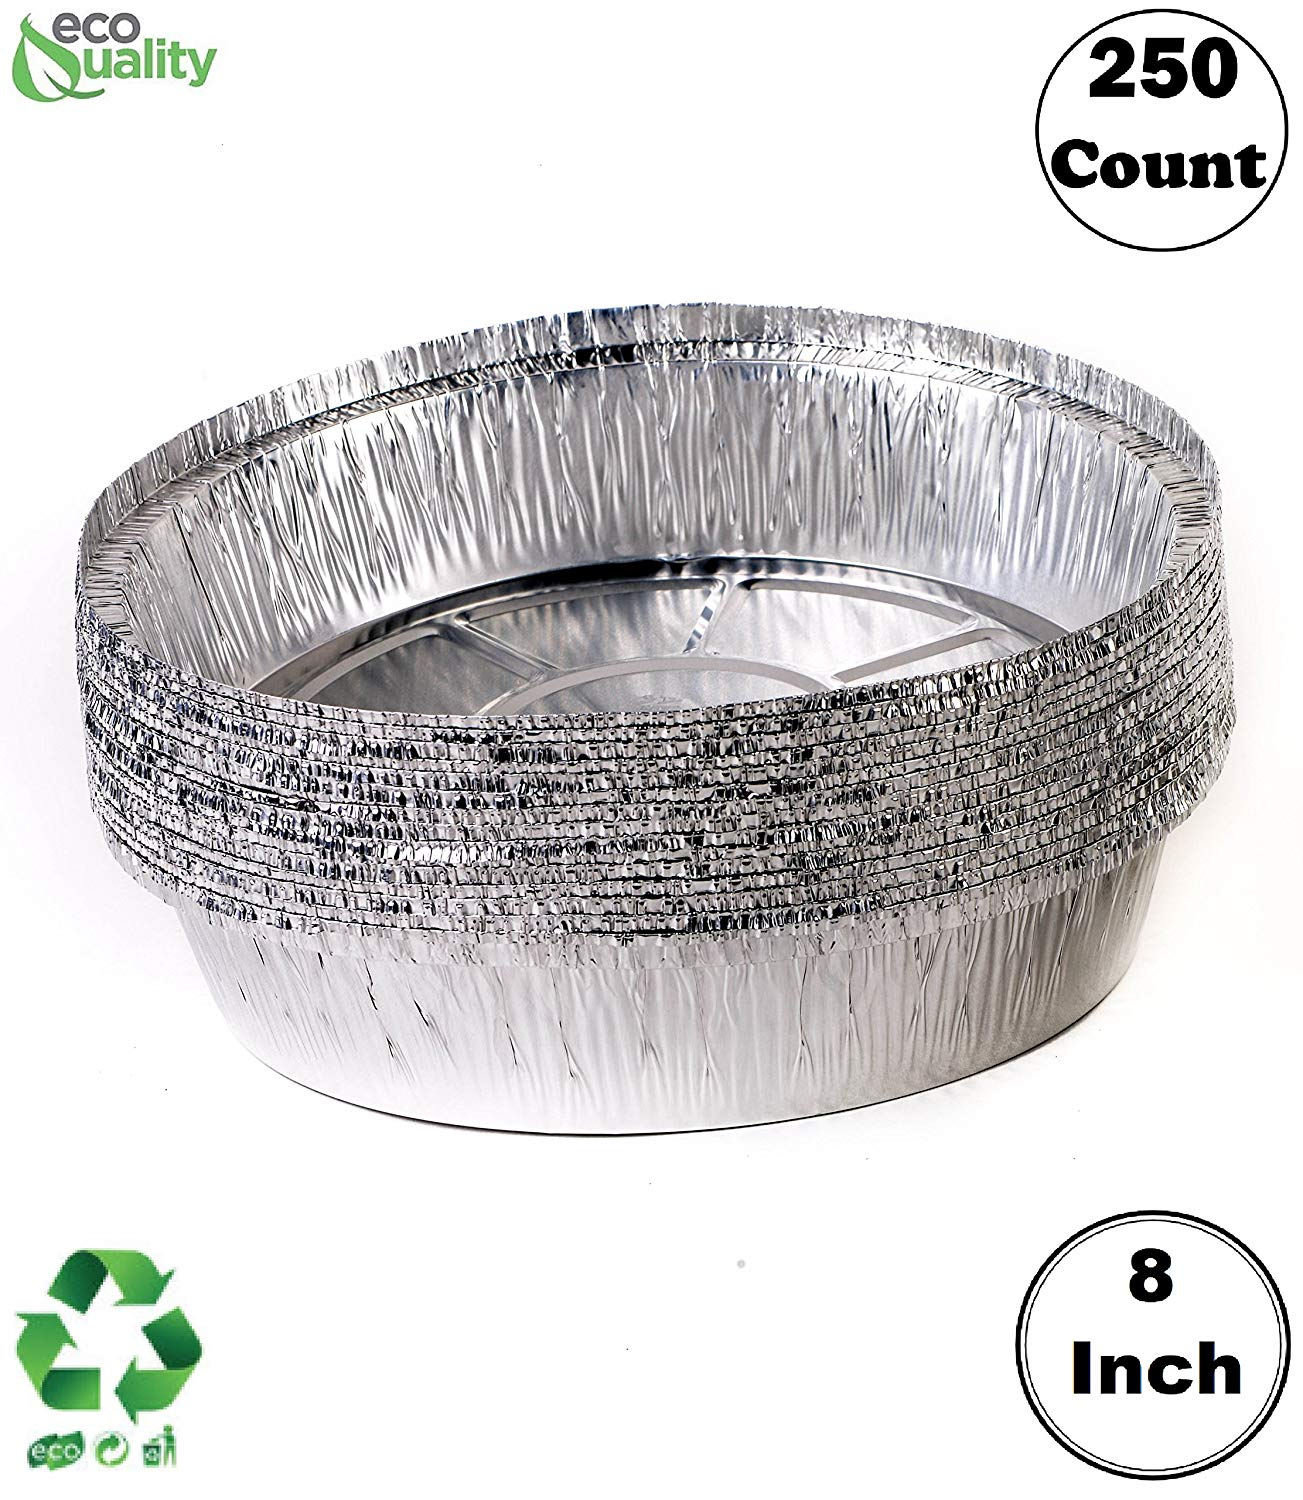 HFA//DPI 12 Round Flat Aluminum Foil Catering Serving Tray w//Clear Dome Lid pack of 50